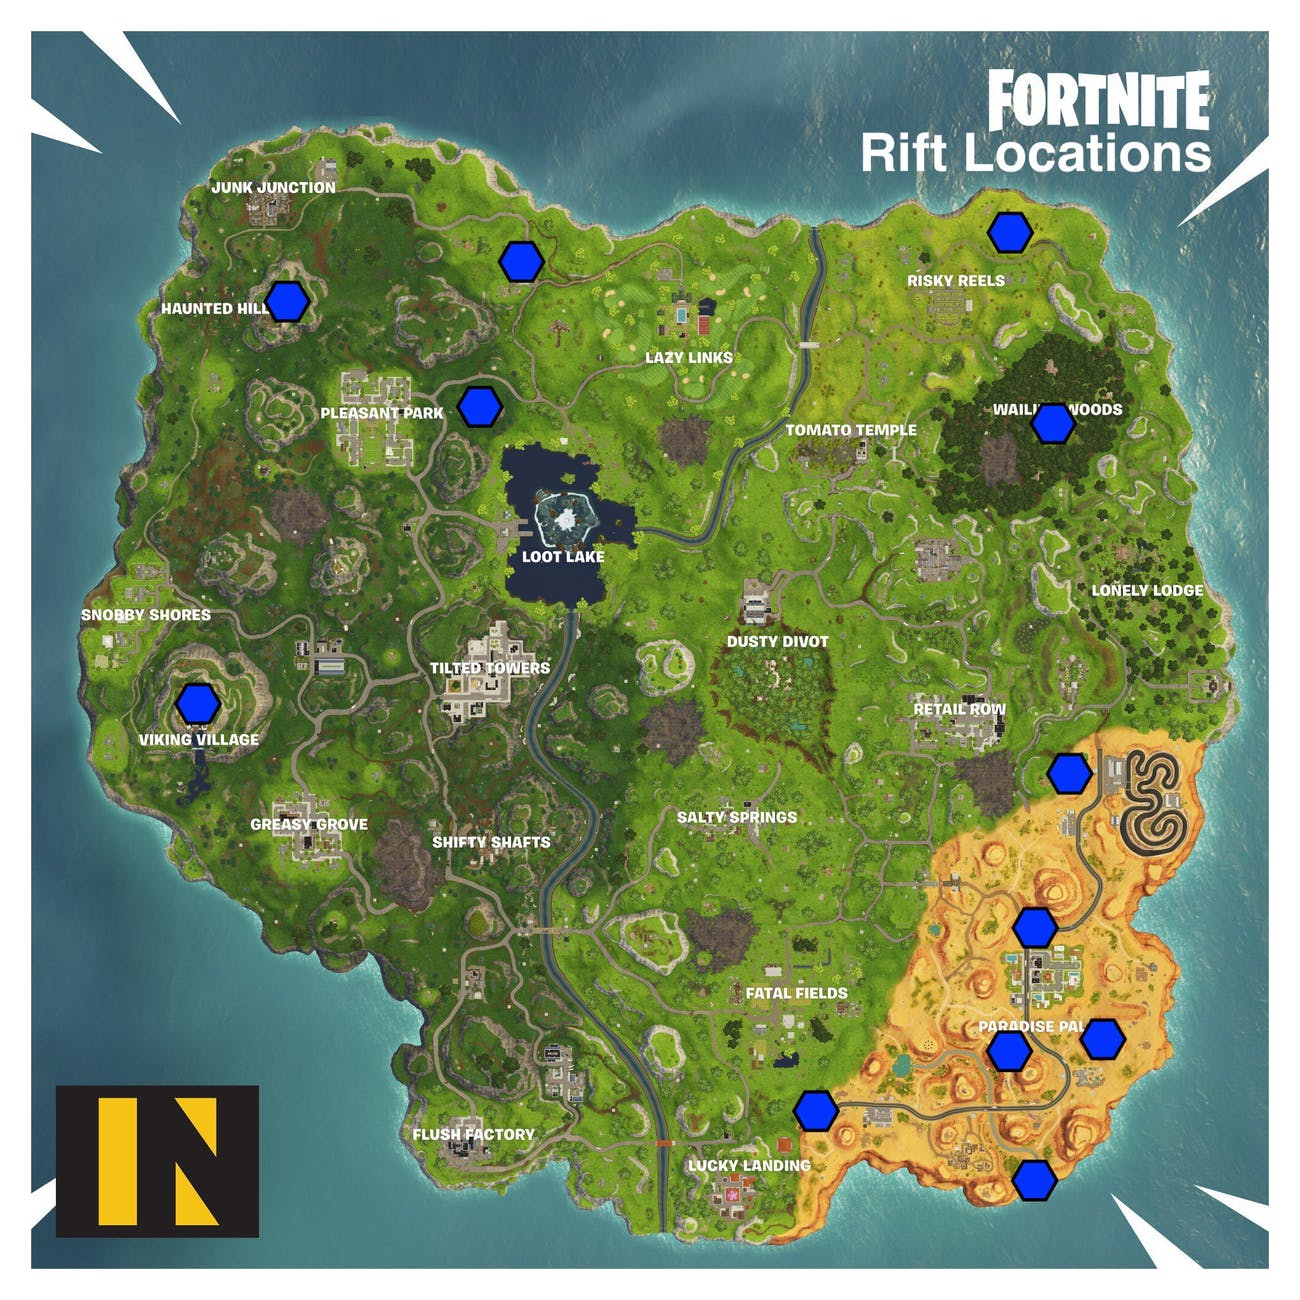 Fortnite' Rift Locations: Season 6 Map Shows Where All the